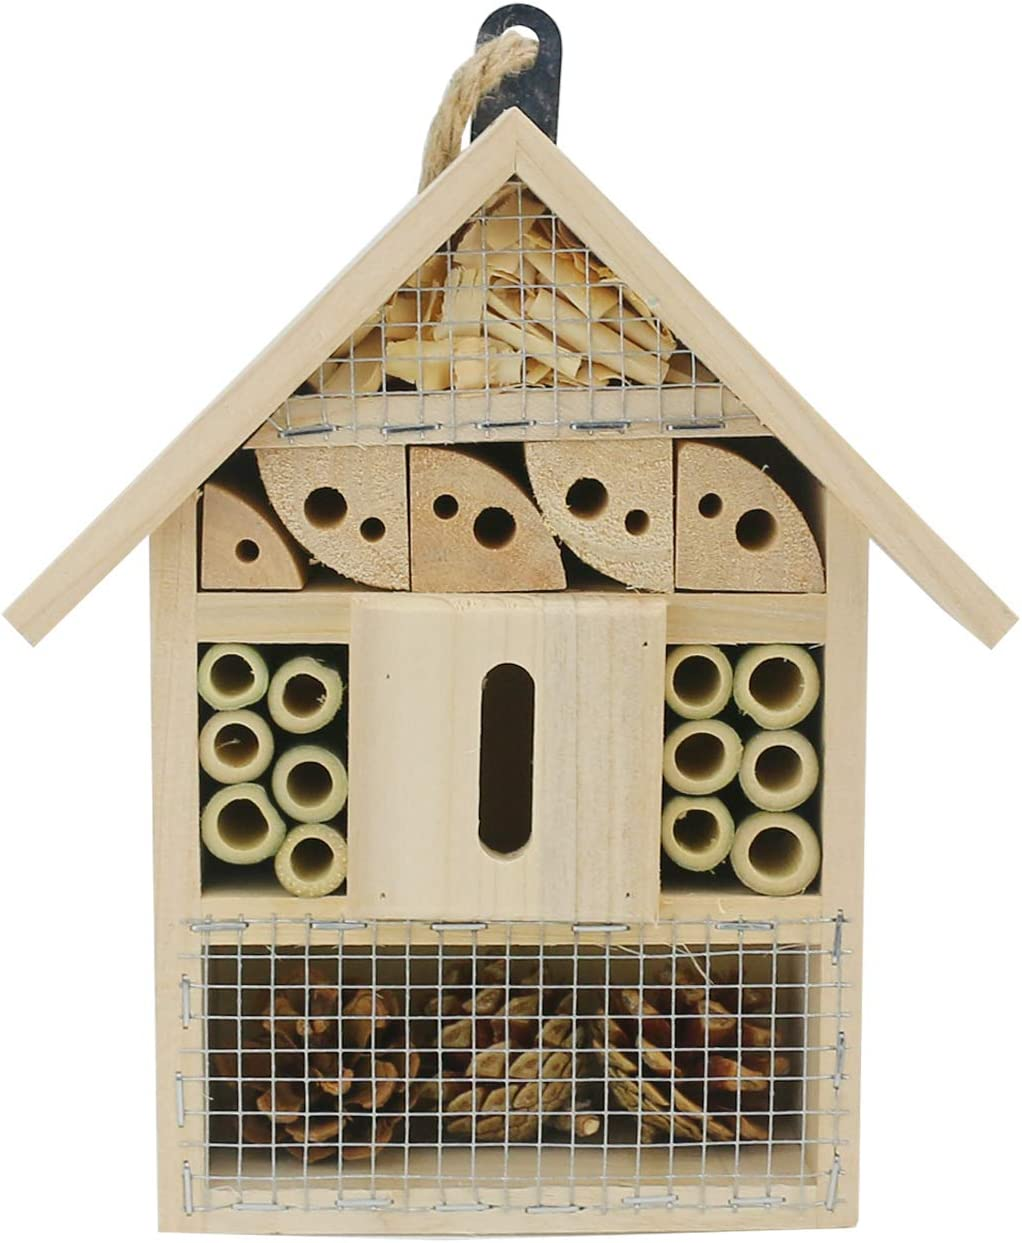 "Sunnygalde Hand-Made Natural Wooden Insect House Garden Bug Hotel Perfect Home for Ladybugs/Mason Bees/Butterflies Live (8.5"" x 5.3"" x 2.2"")"